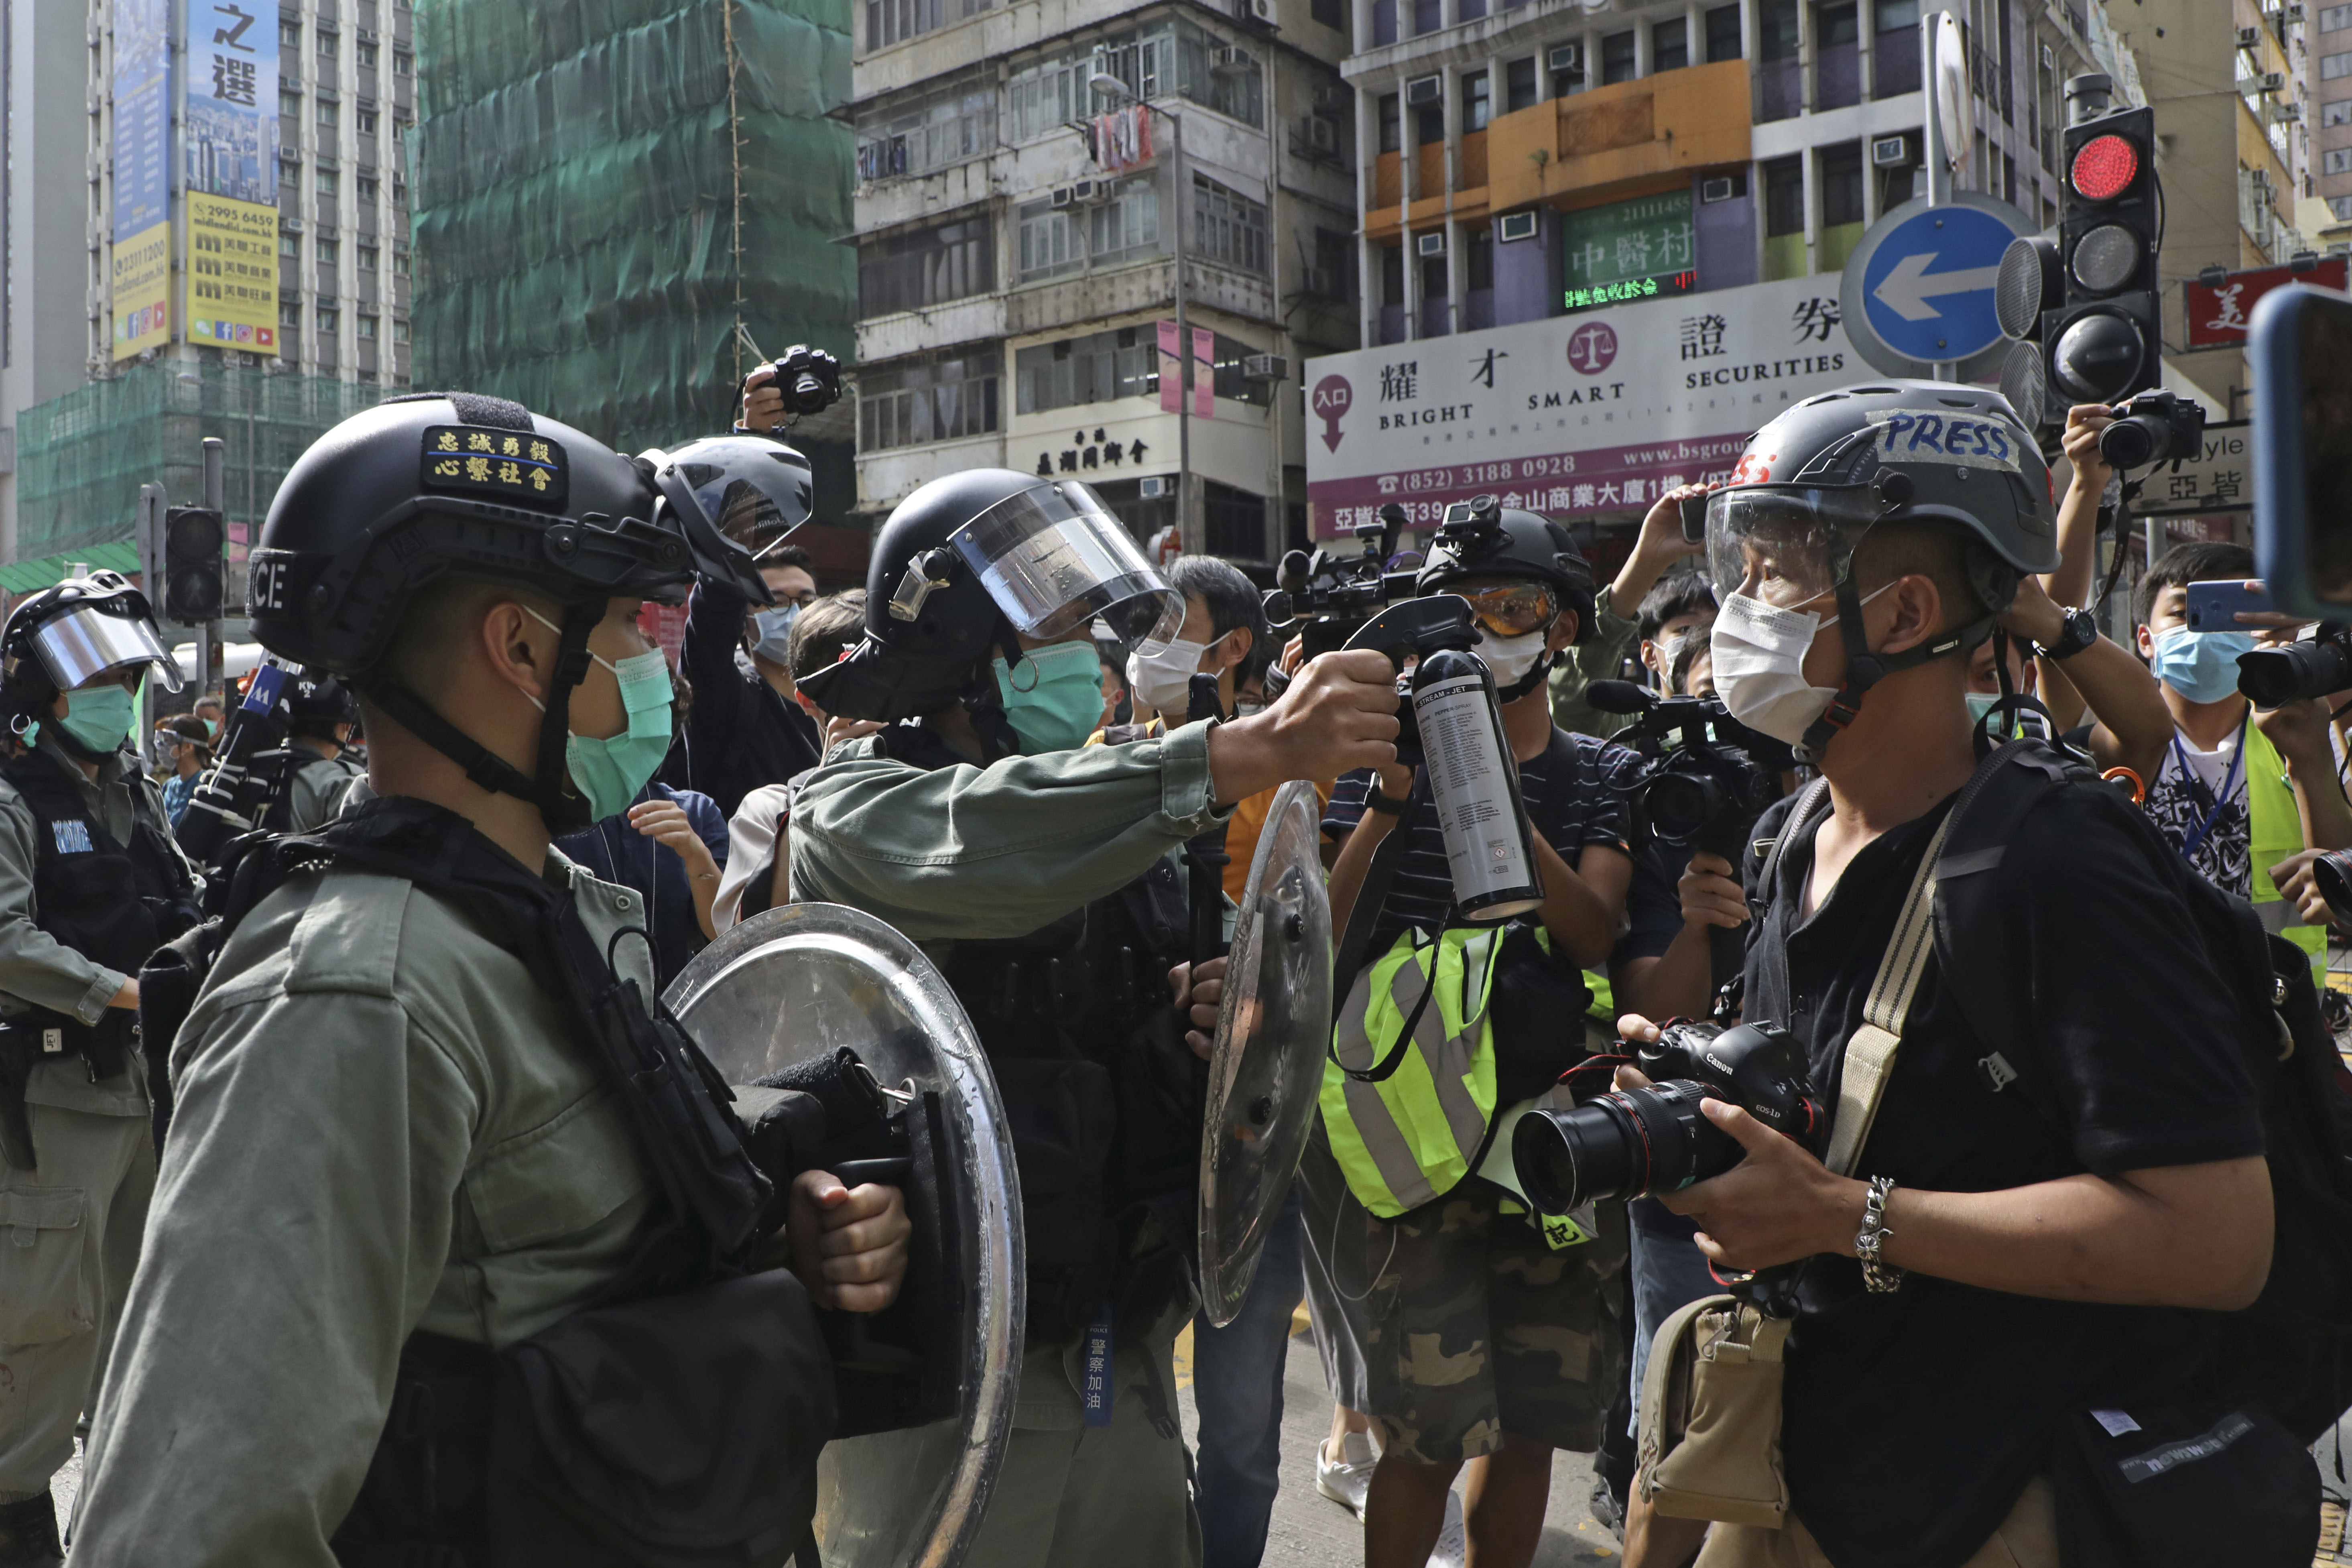 A riot police points the pepper spray to journalists